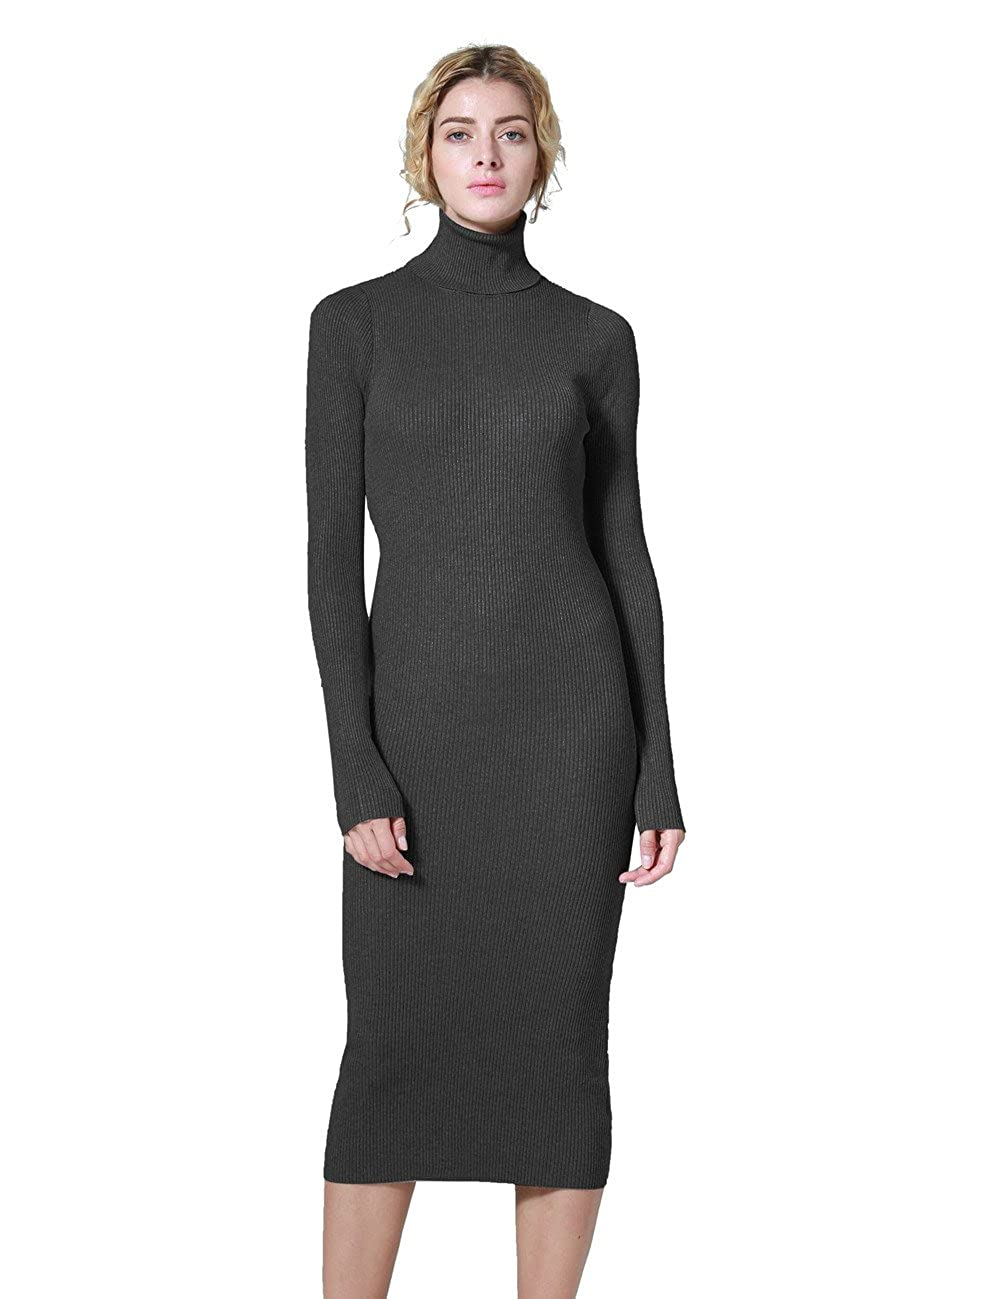 08b41054 ninovino Women's Ribbed Knit Long Sleeve Slim Fit Sweater Dress: Amazon.ca:  Clothing & Accessories